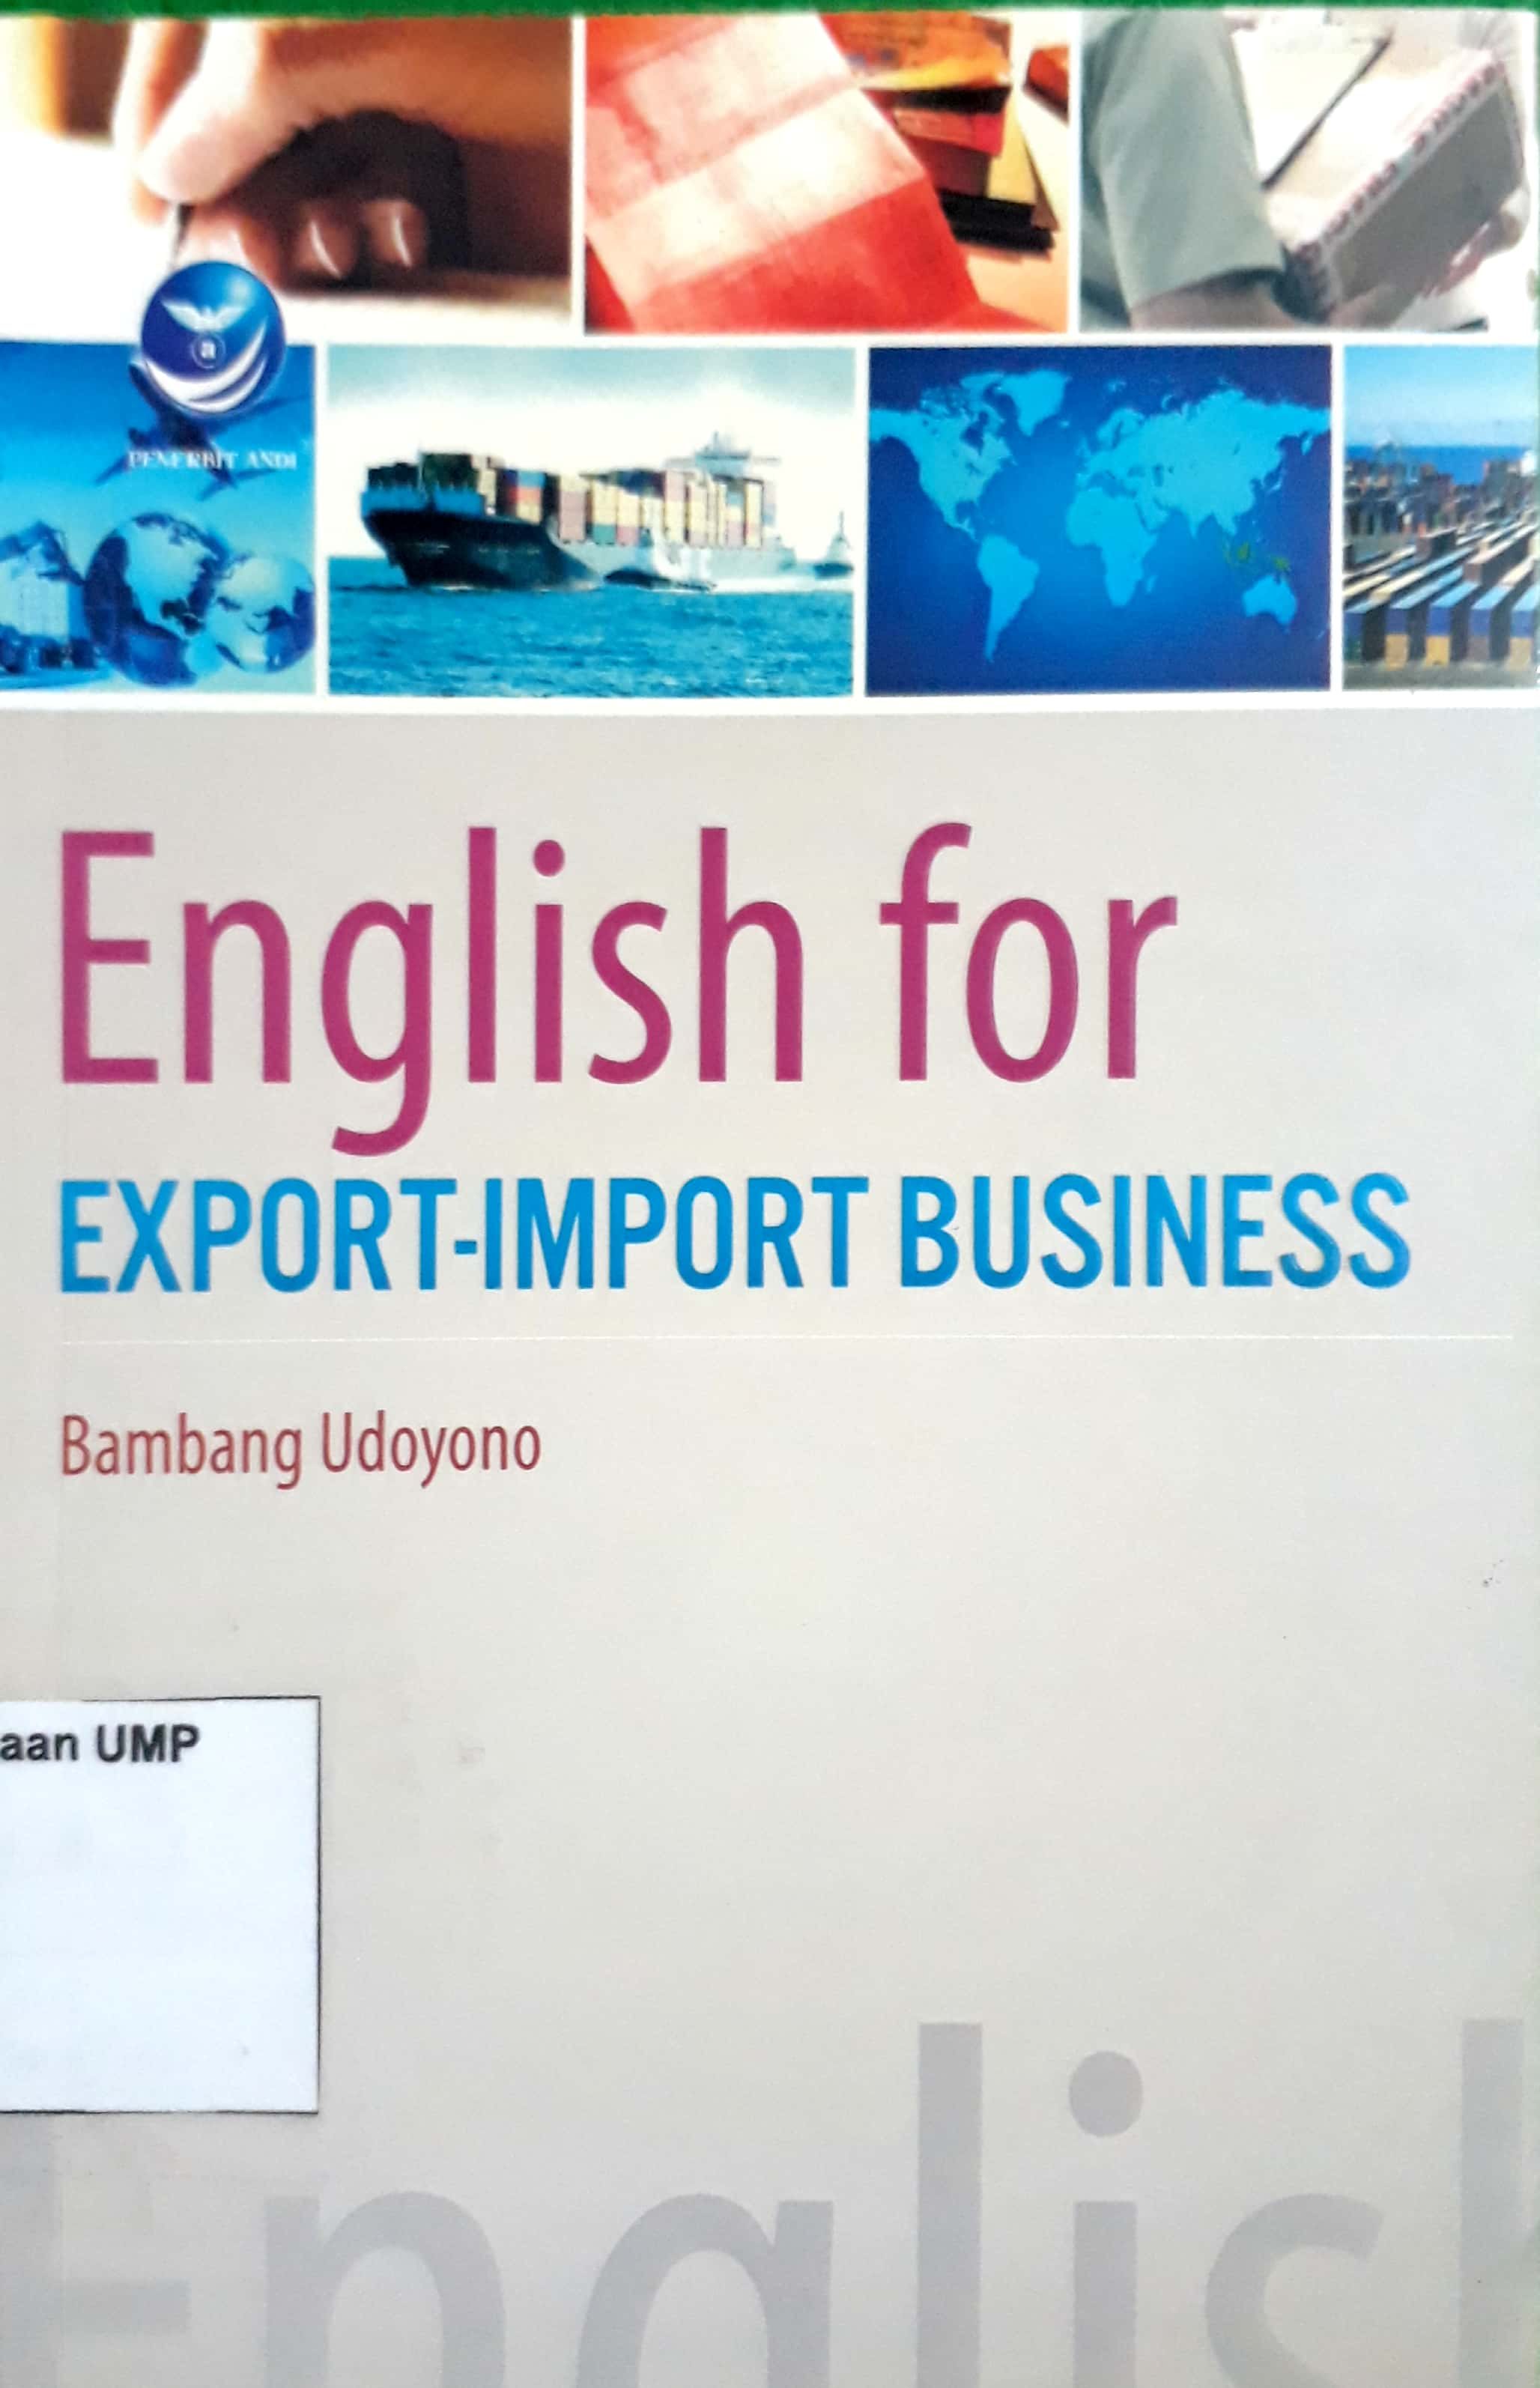 English for export-import business